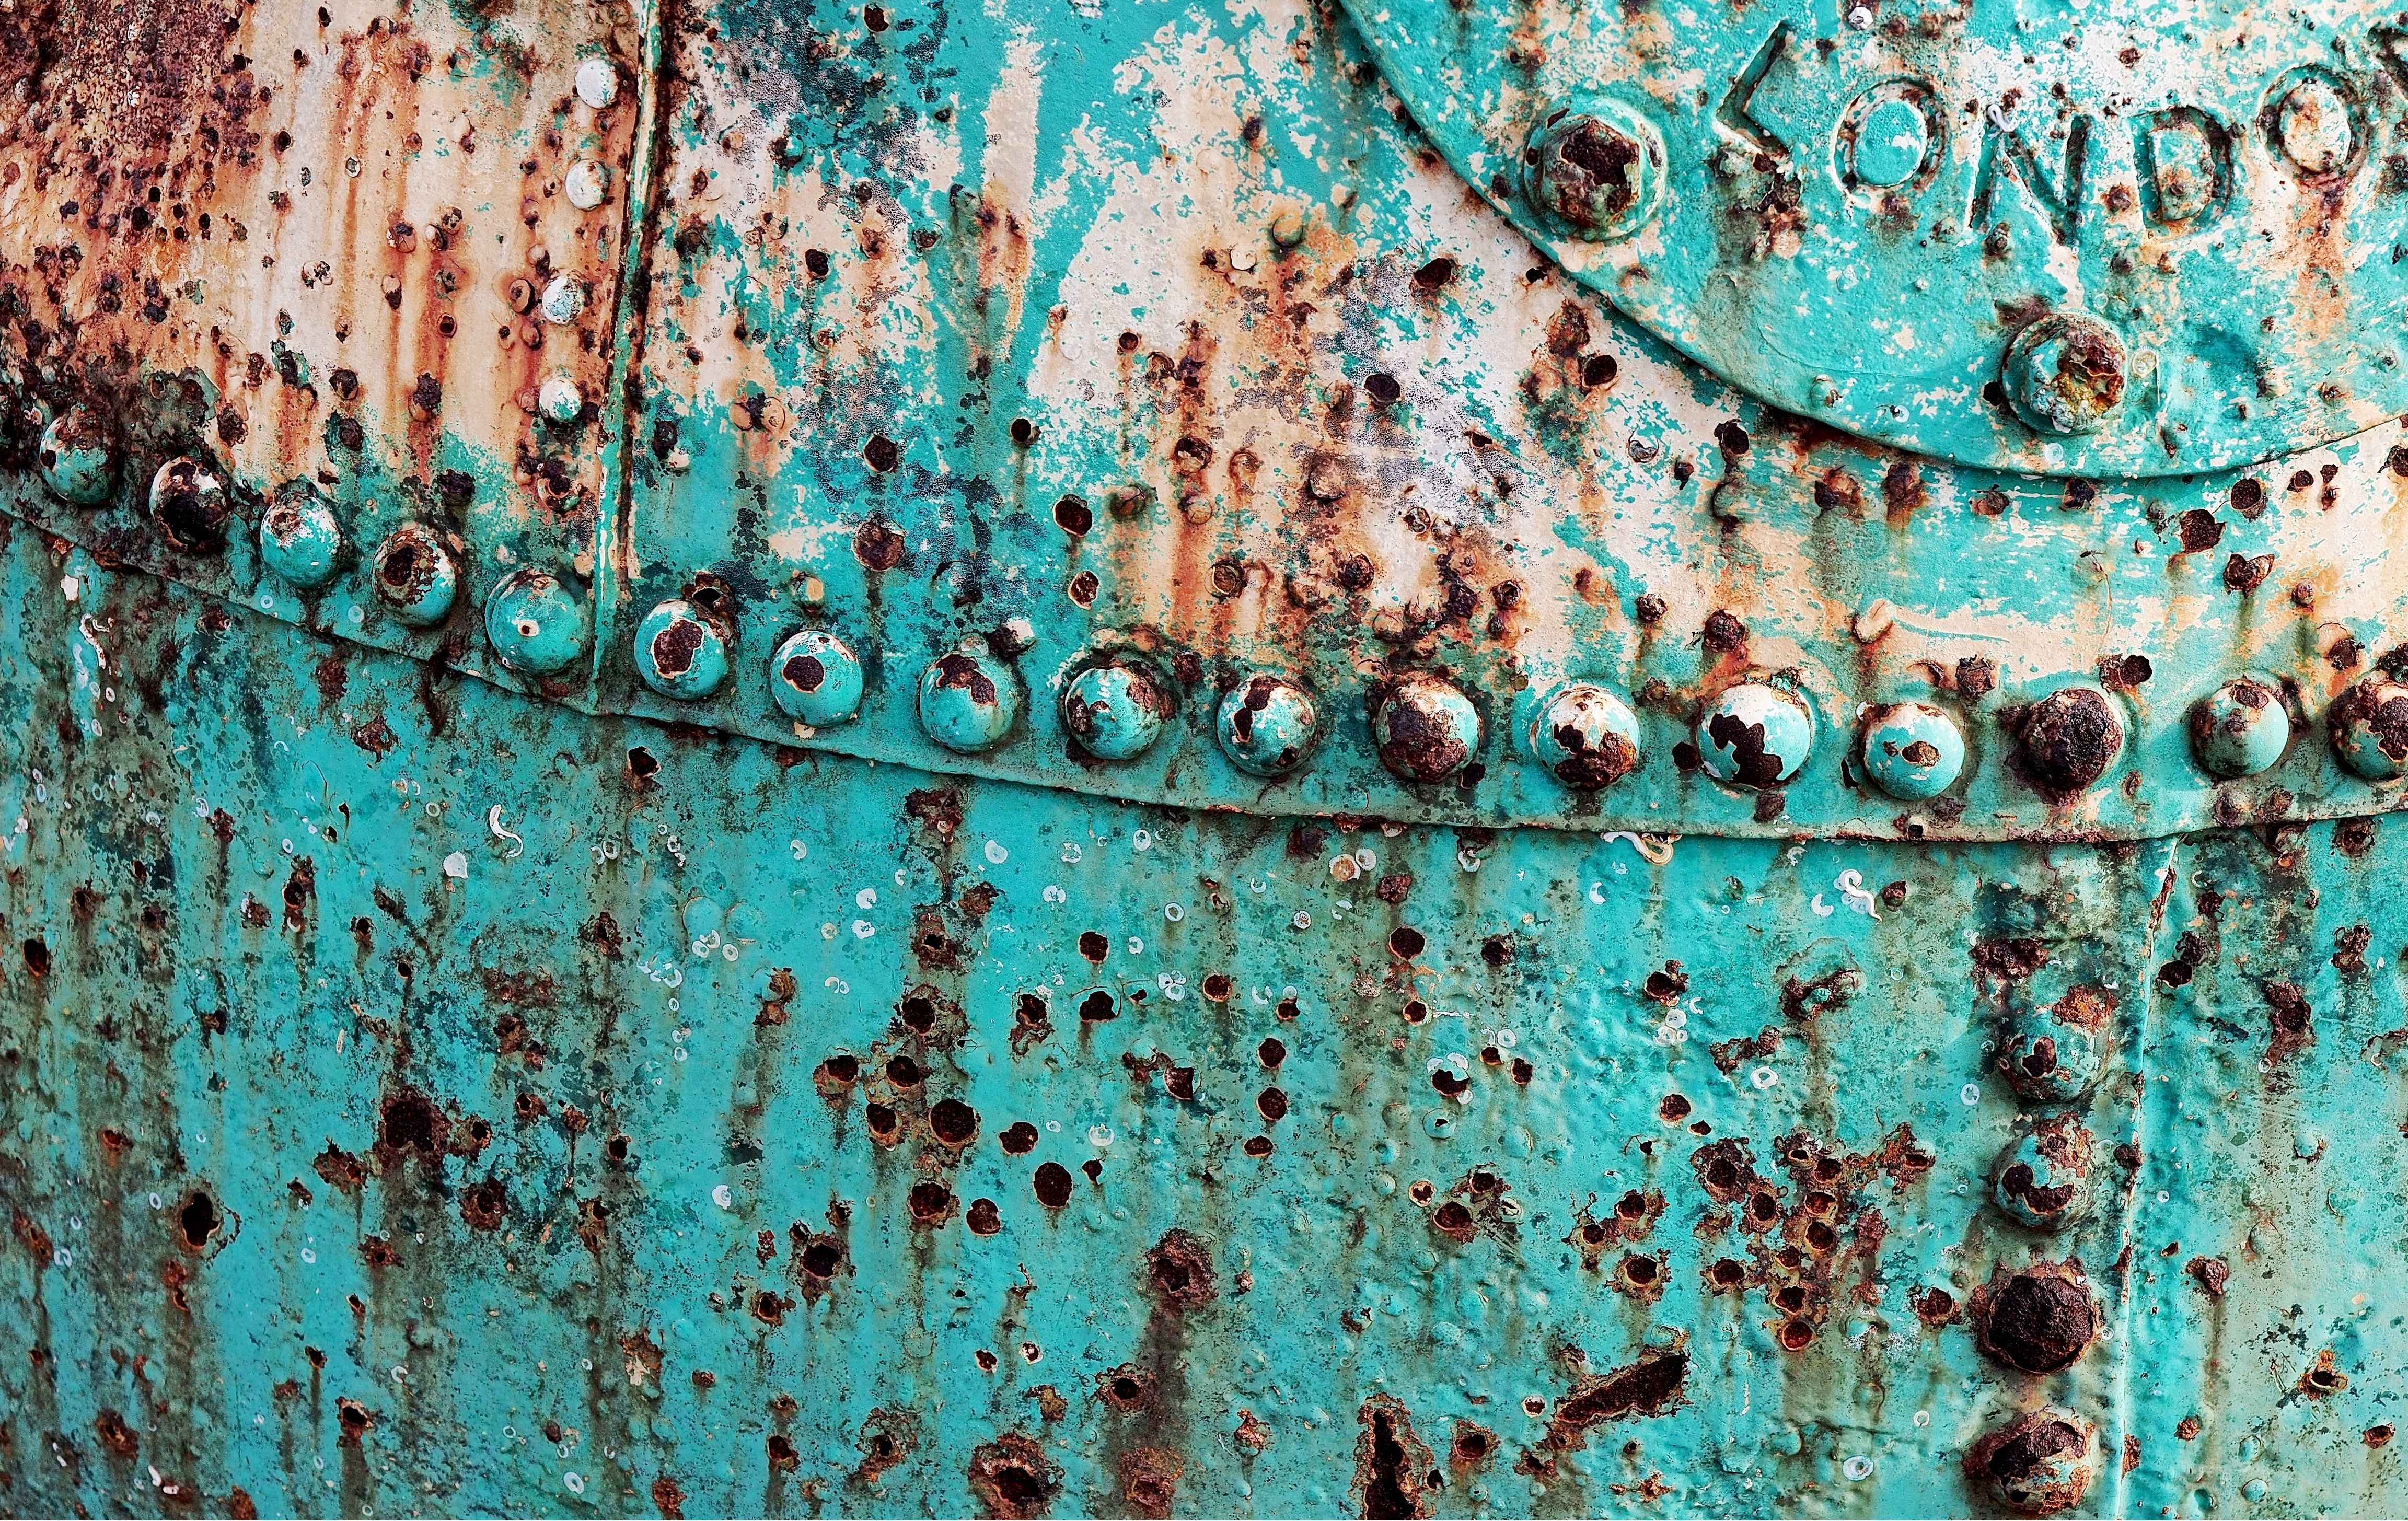 texture-old-wall-steel-rust-green-786477-pxhere.com.jpg